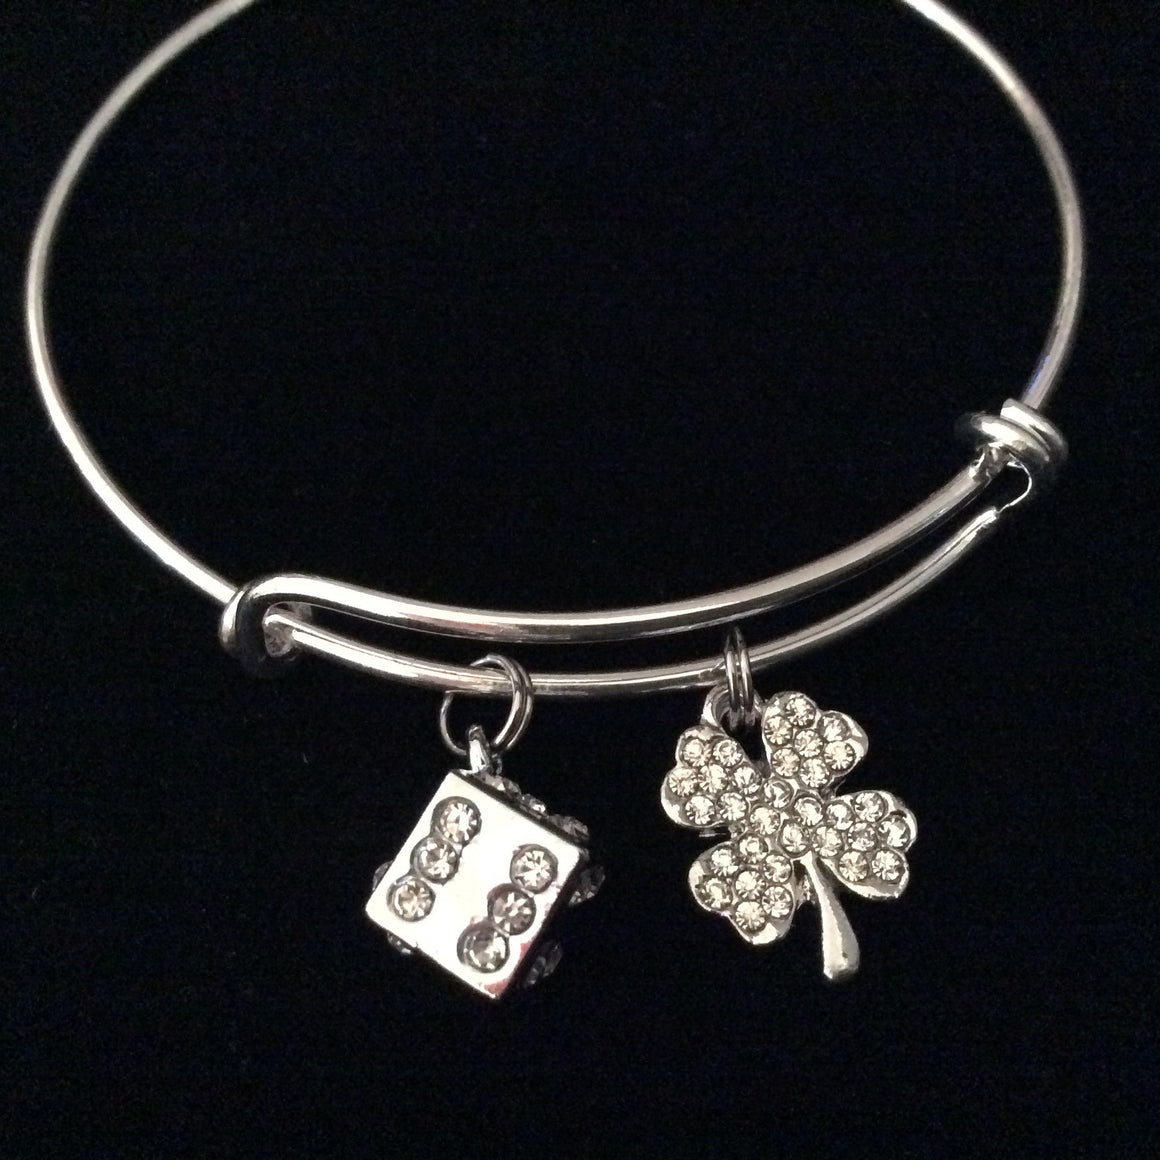 Lady Luck Rhinestone Crystal Dice and Four Leaf Clover Charm on Silver Expandable Adjustable Wire Bangle Bracelet Stacking Handmade Trendy Casino Gift